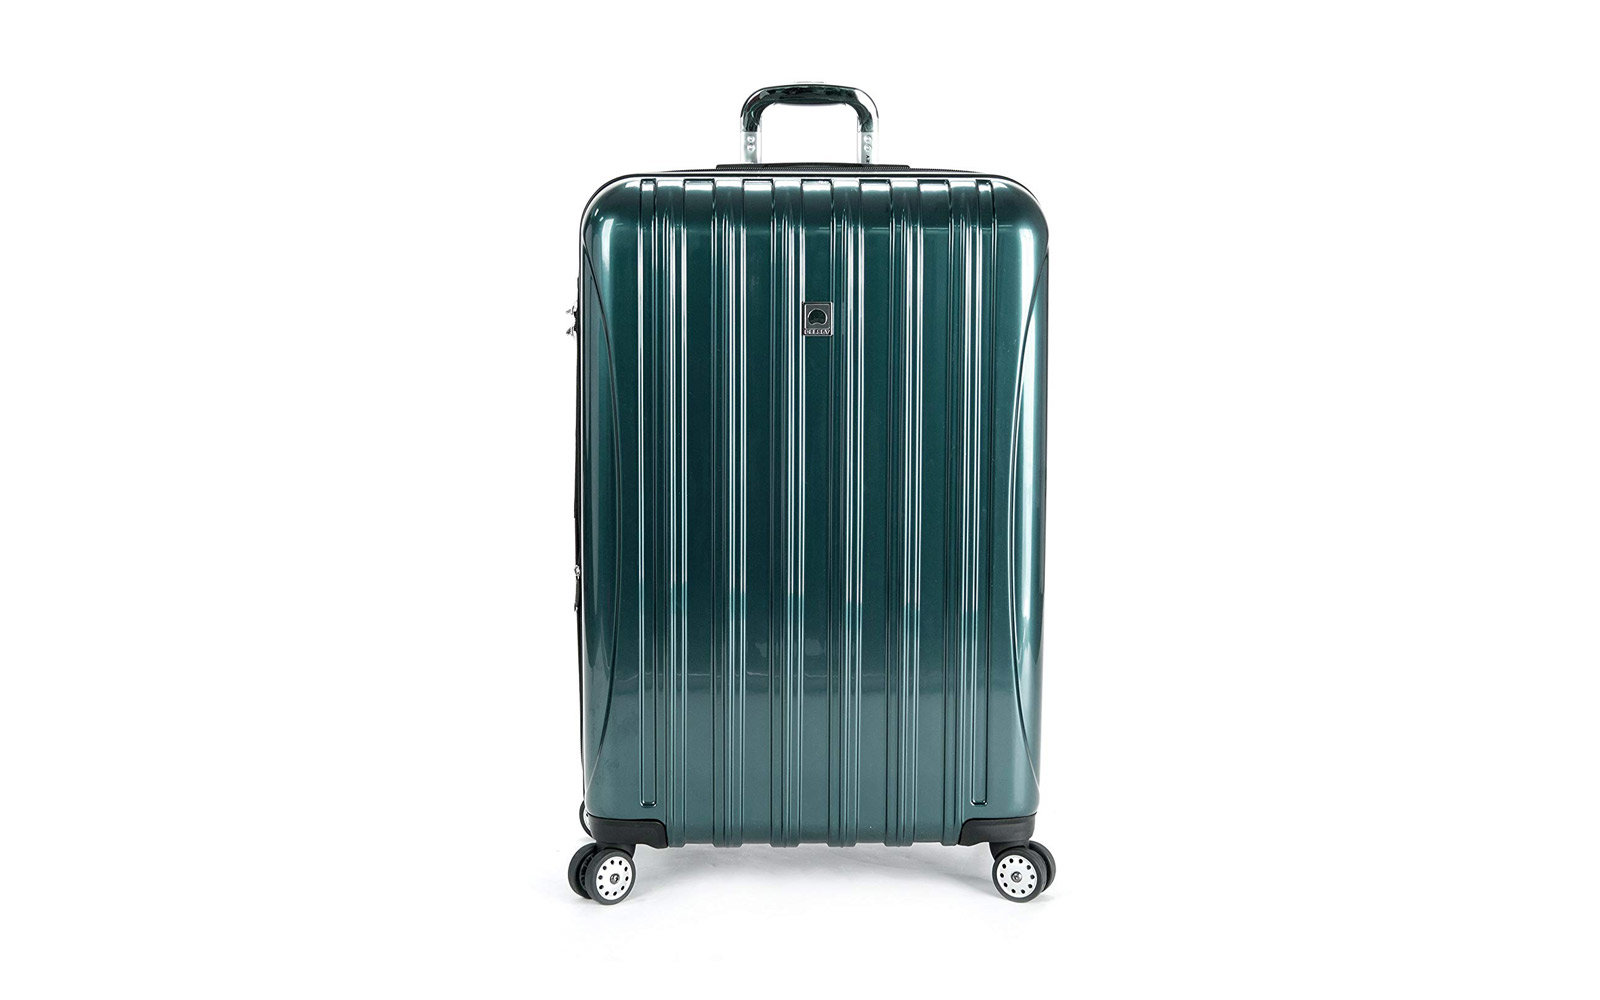 Delsey Helium Aeri Expandable Spinner Trolley Luggage